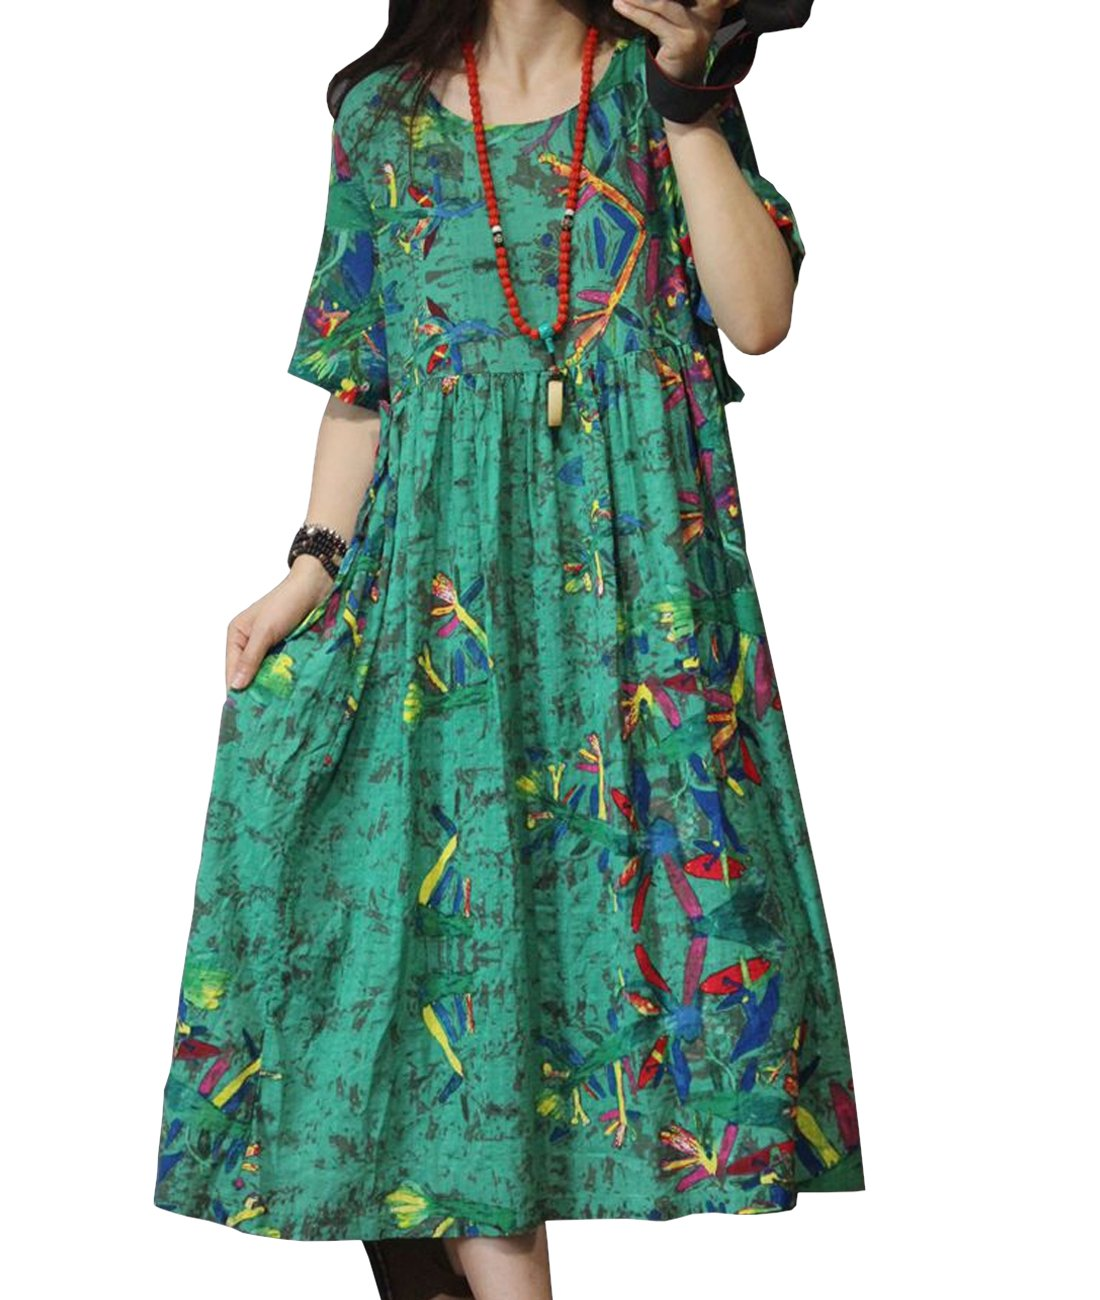 YESNO YE8 Women Casual Loose Dress Floral Flare Dress 100% Linen Bohemia Style